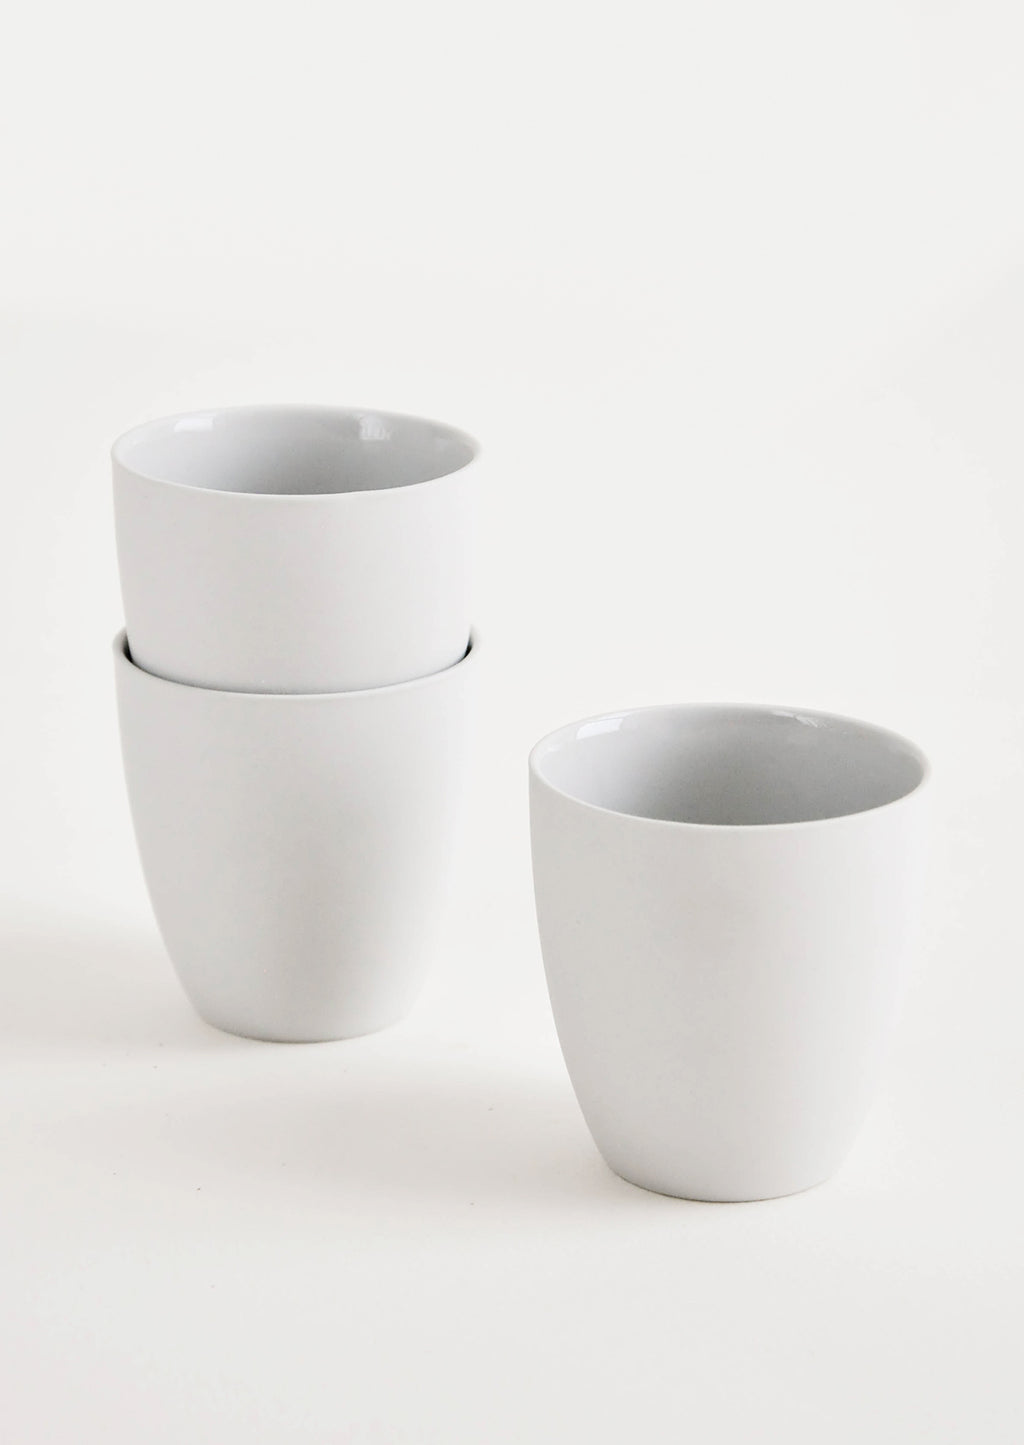 Grey: Small, light grey porcelain cup with matte exterior and glossy interior glaze - LEIF